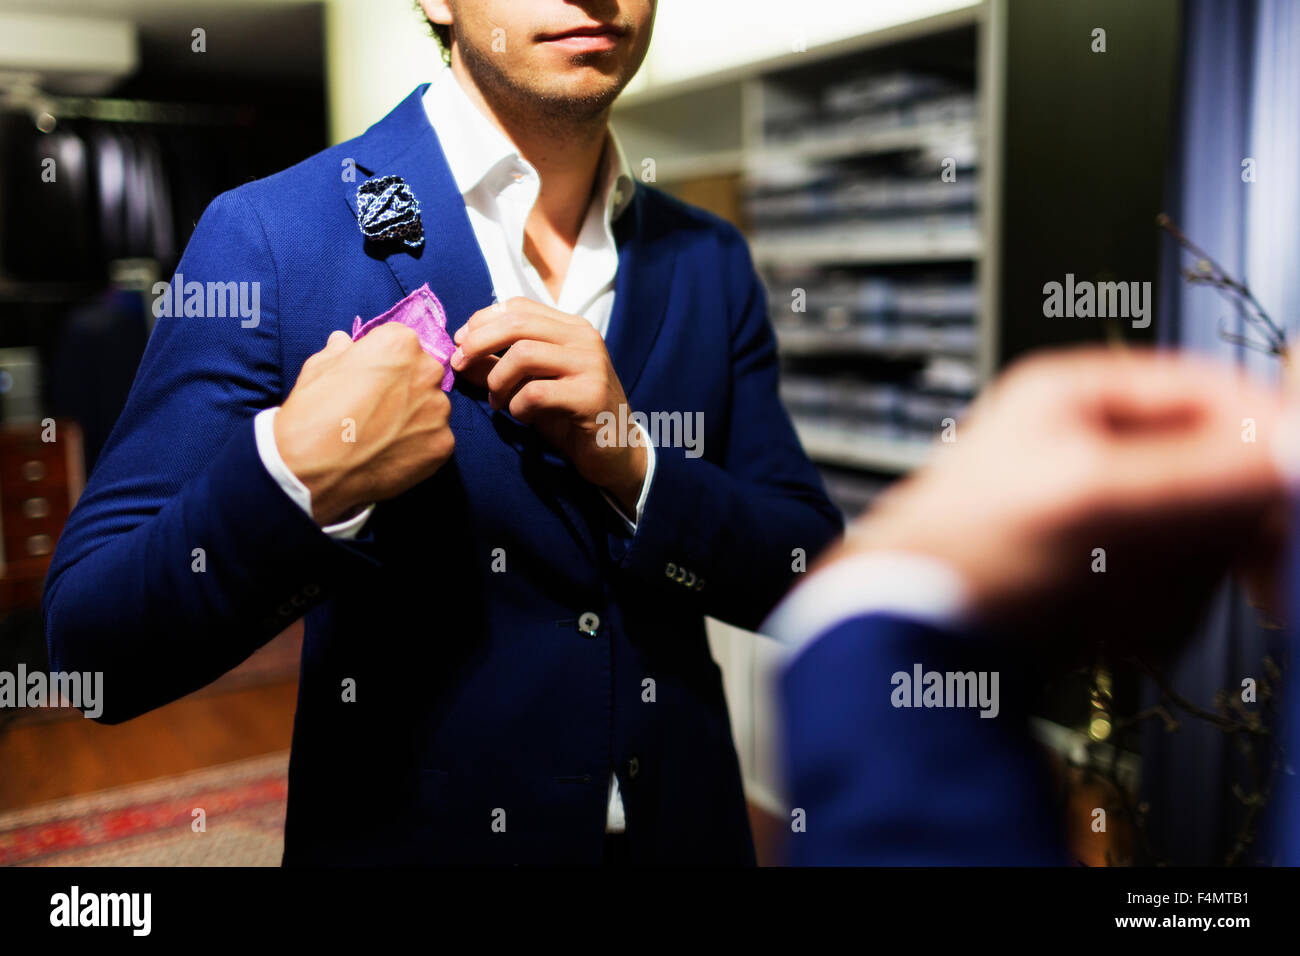 Midsection of male customer adjusting handkerchief on suit at clothing store - Stock Image